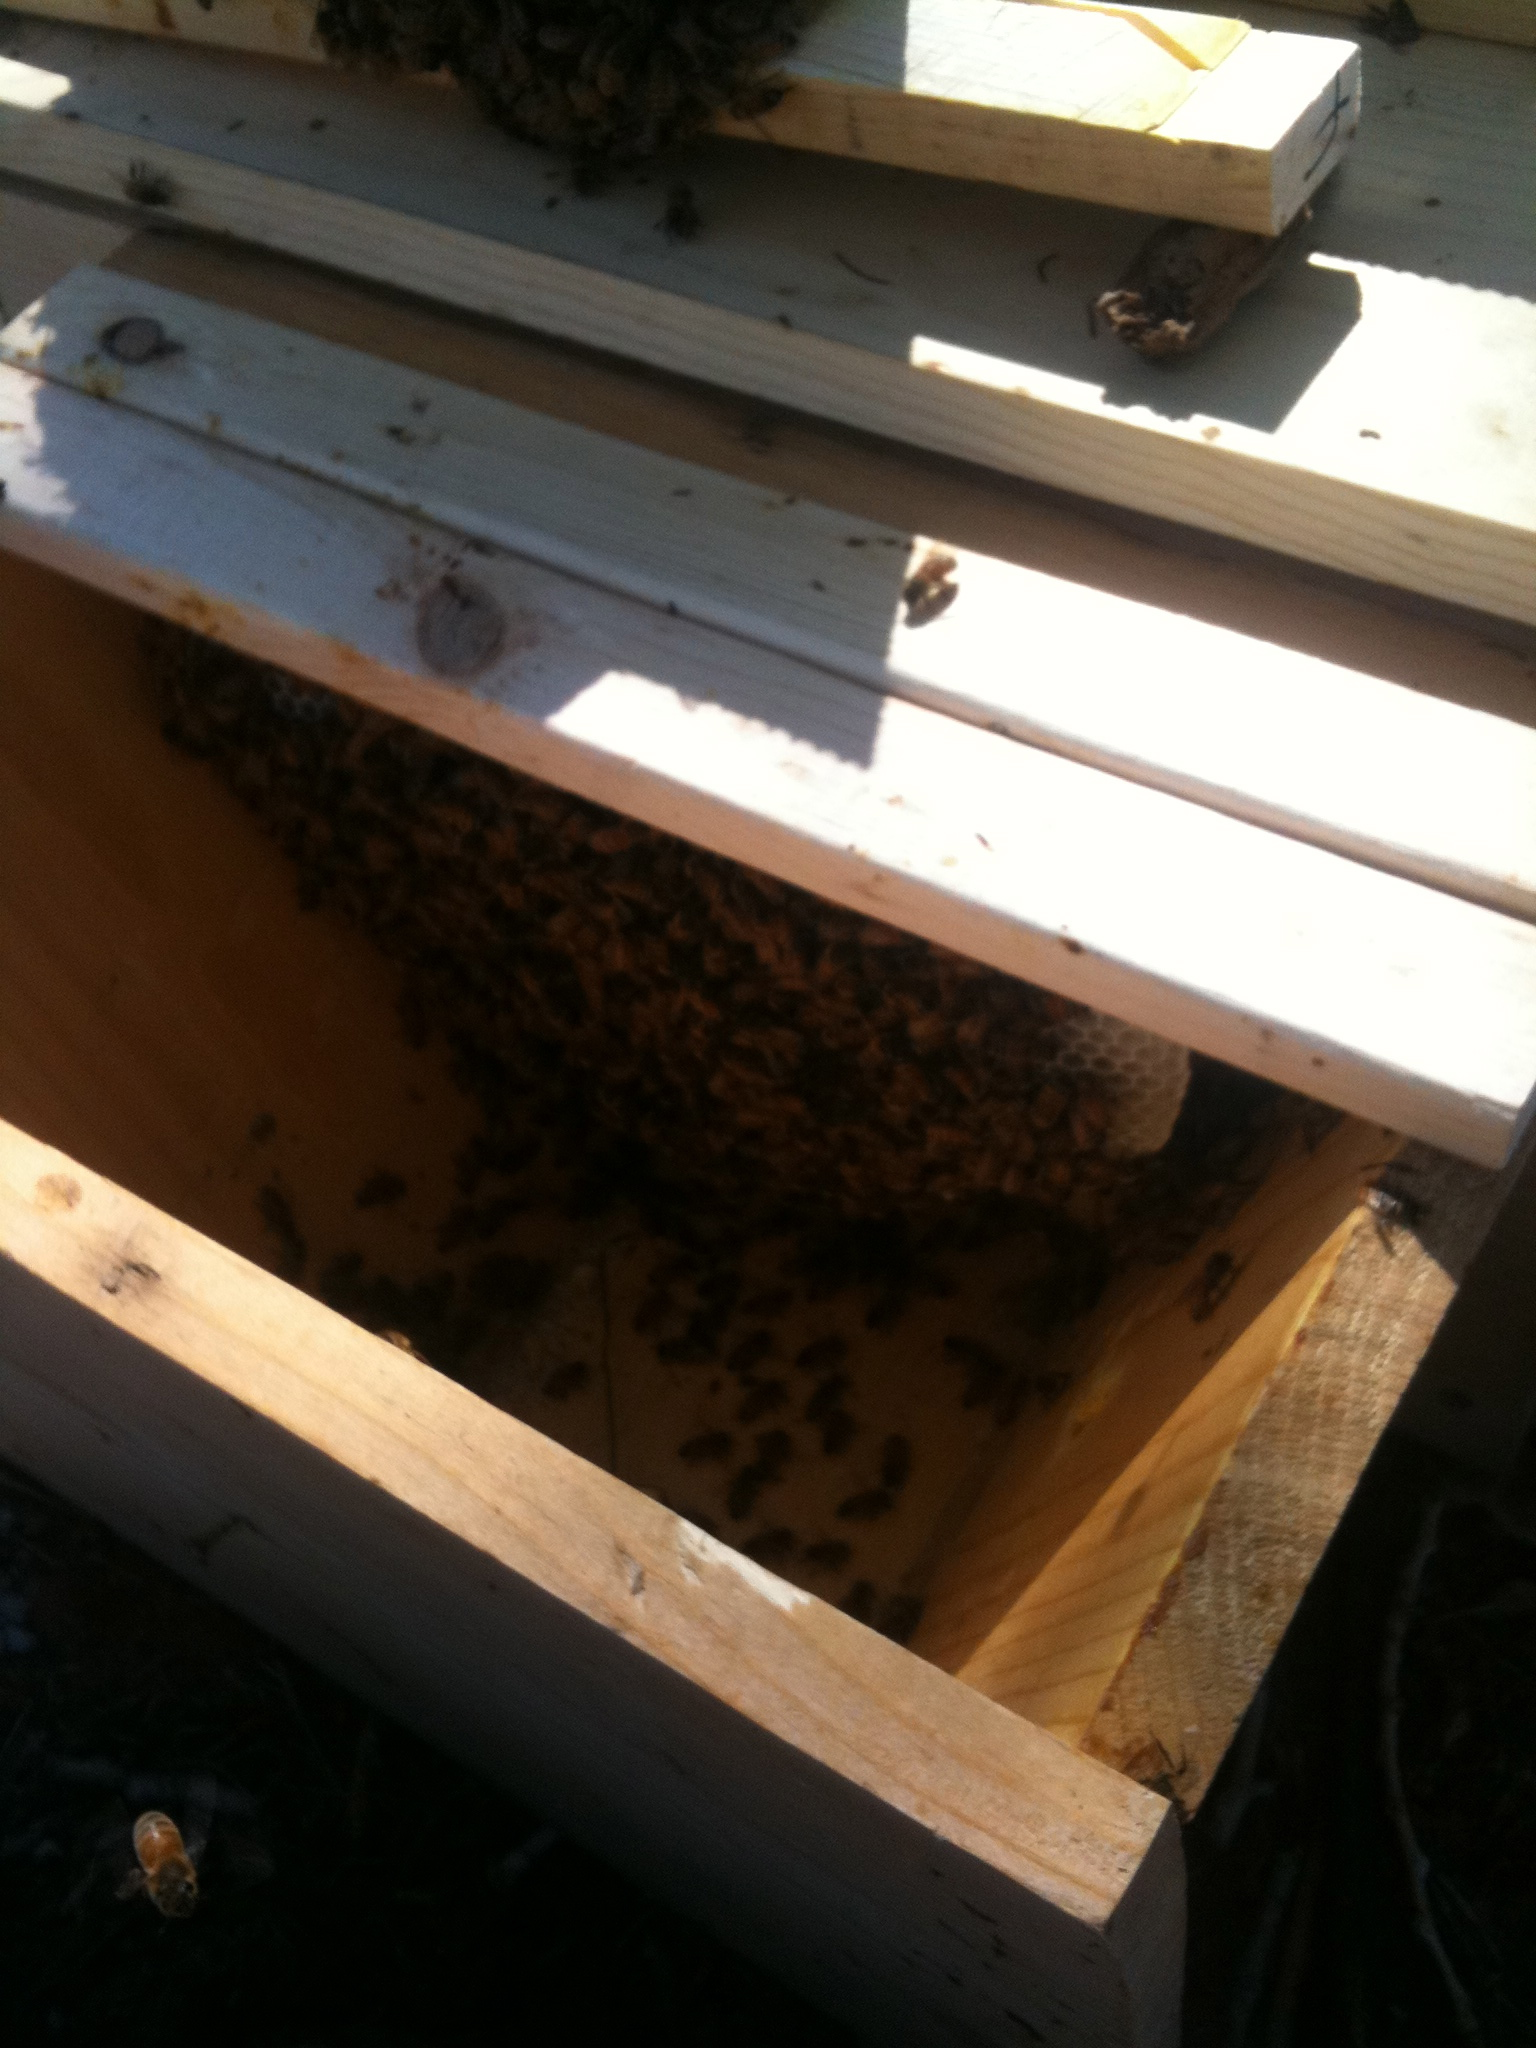 Top Bar Hive For Sale And Quite The Rage | Apis Hive ...